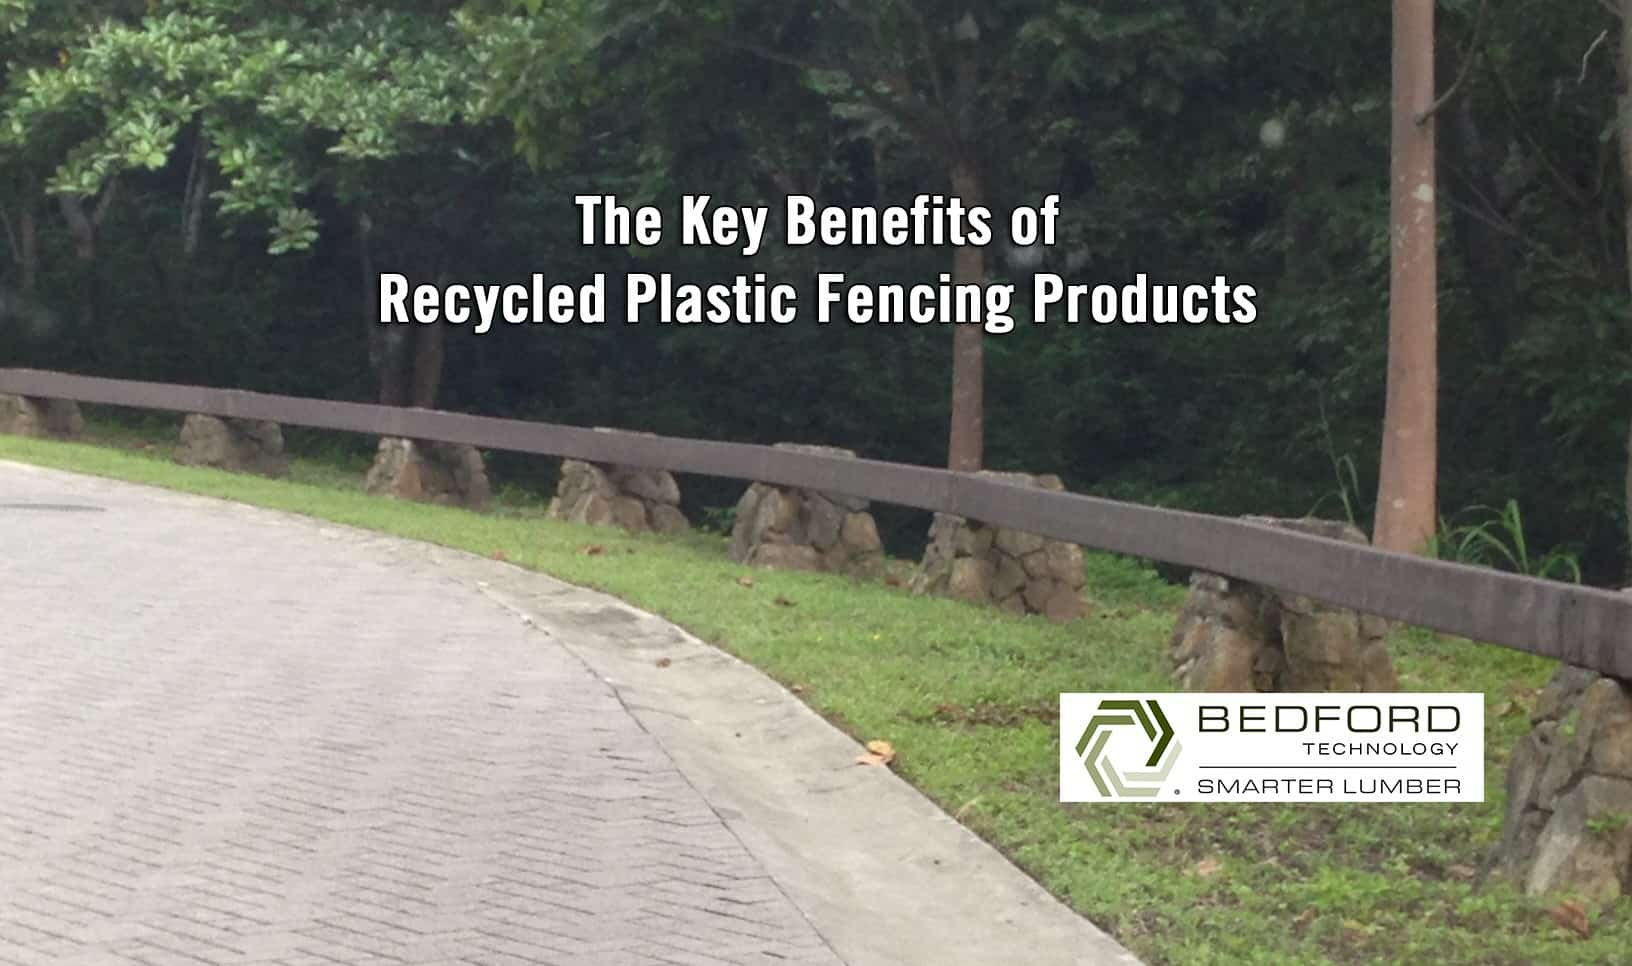 Key Benefits of Fencing Products Blog Post Image